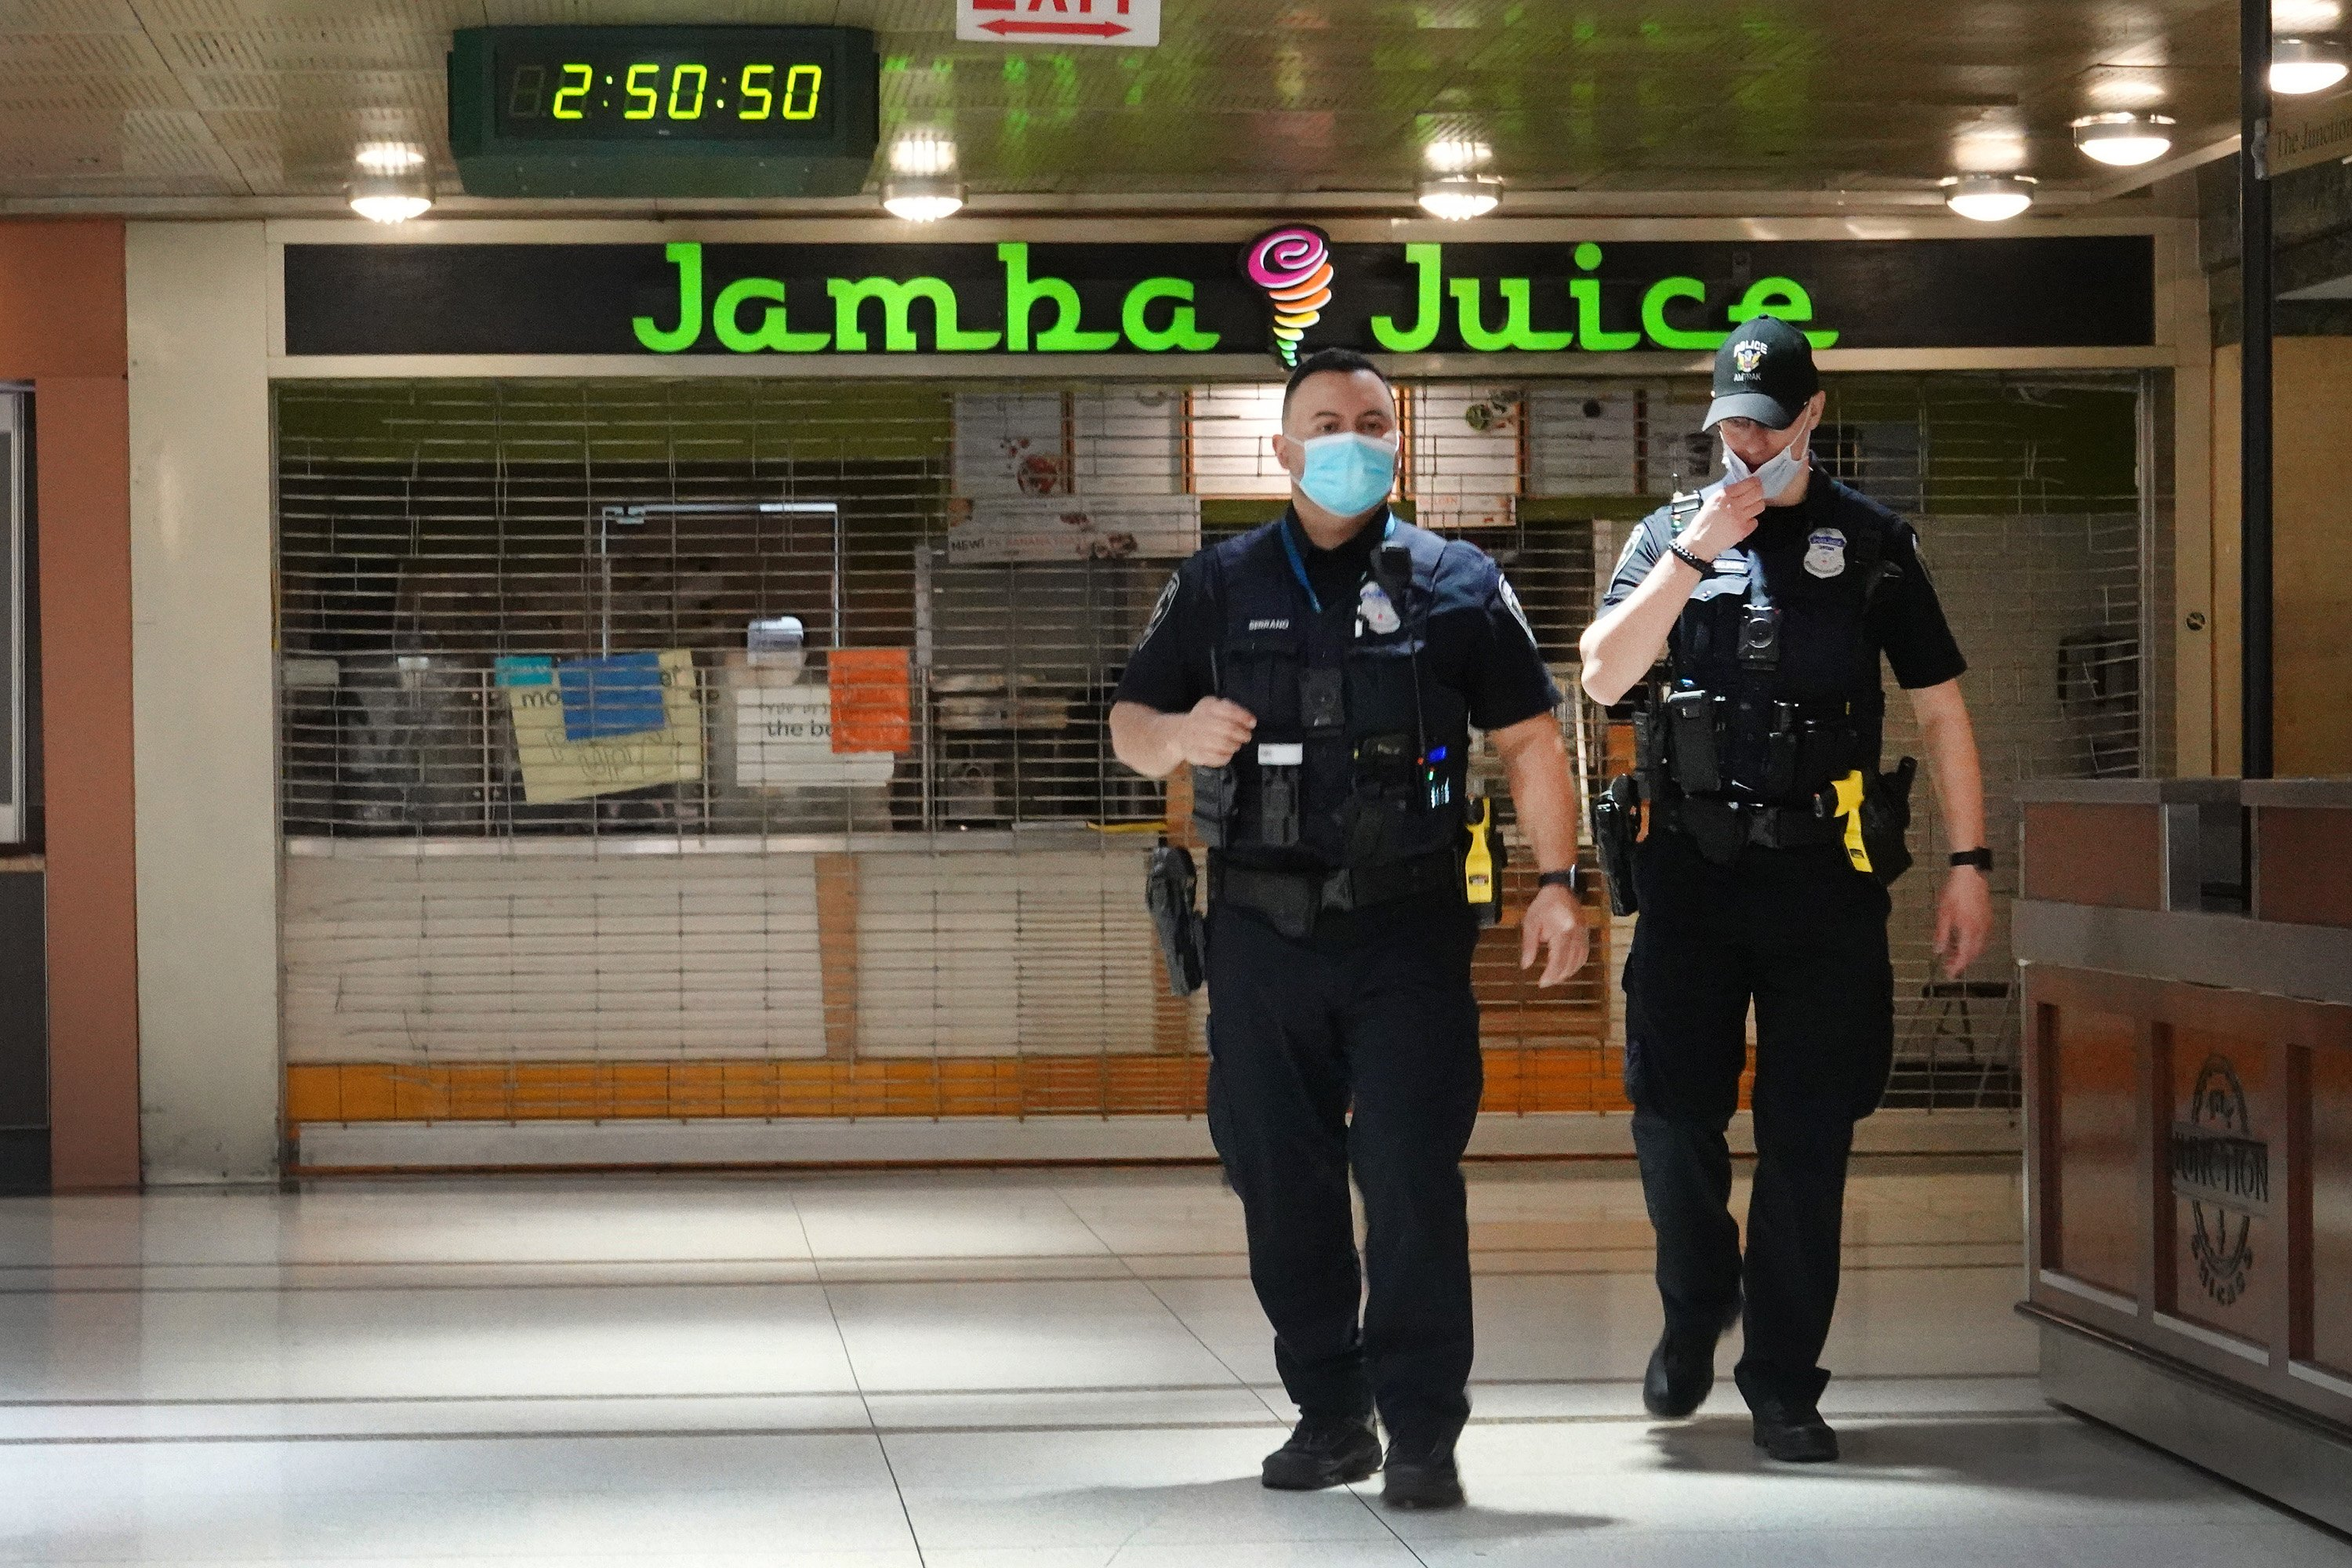 CHICAGO, ILLINOIS - APRIL 28: Amtrak police patrol the mostly-shuttered food court inside of Union Station on April 28, 2020 in Chicago, Illinois. Union Station serves Amtrak and Metra commuter train passengers riding into downtown Chicago. Amtrak has reported a 95 percent drop in ridership since the start of the COVID-19 pandemic, and Metra a 97 percent drop. (Photo by Scott Olson/Getty Images)